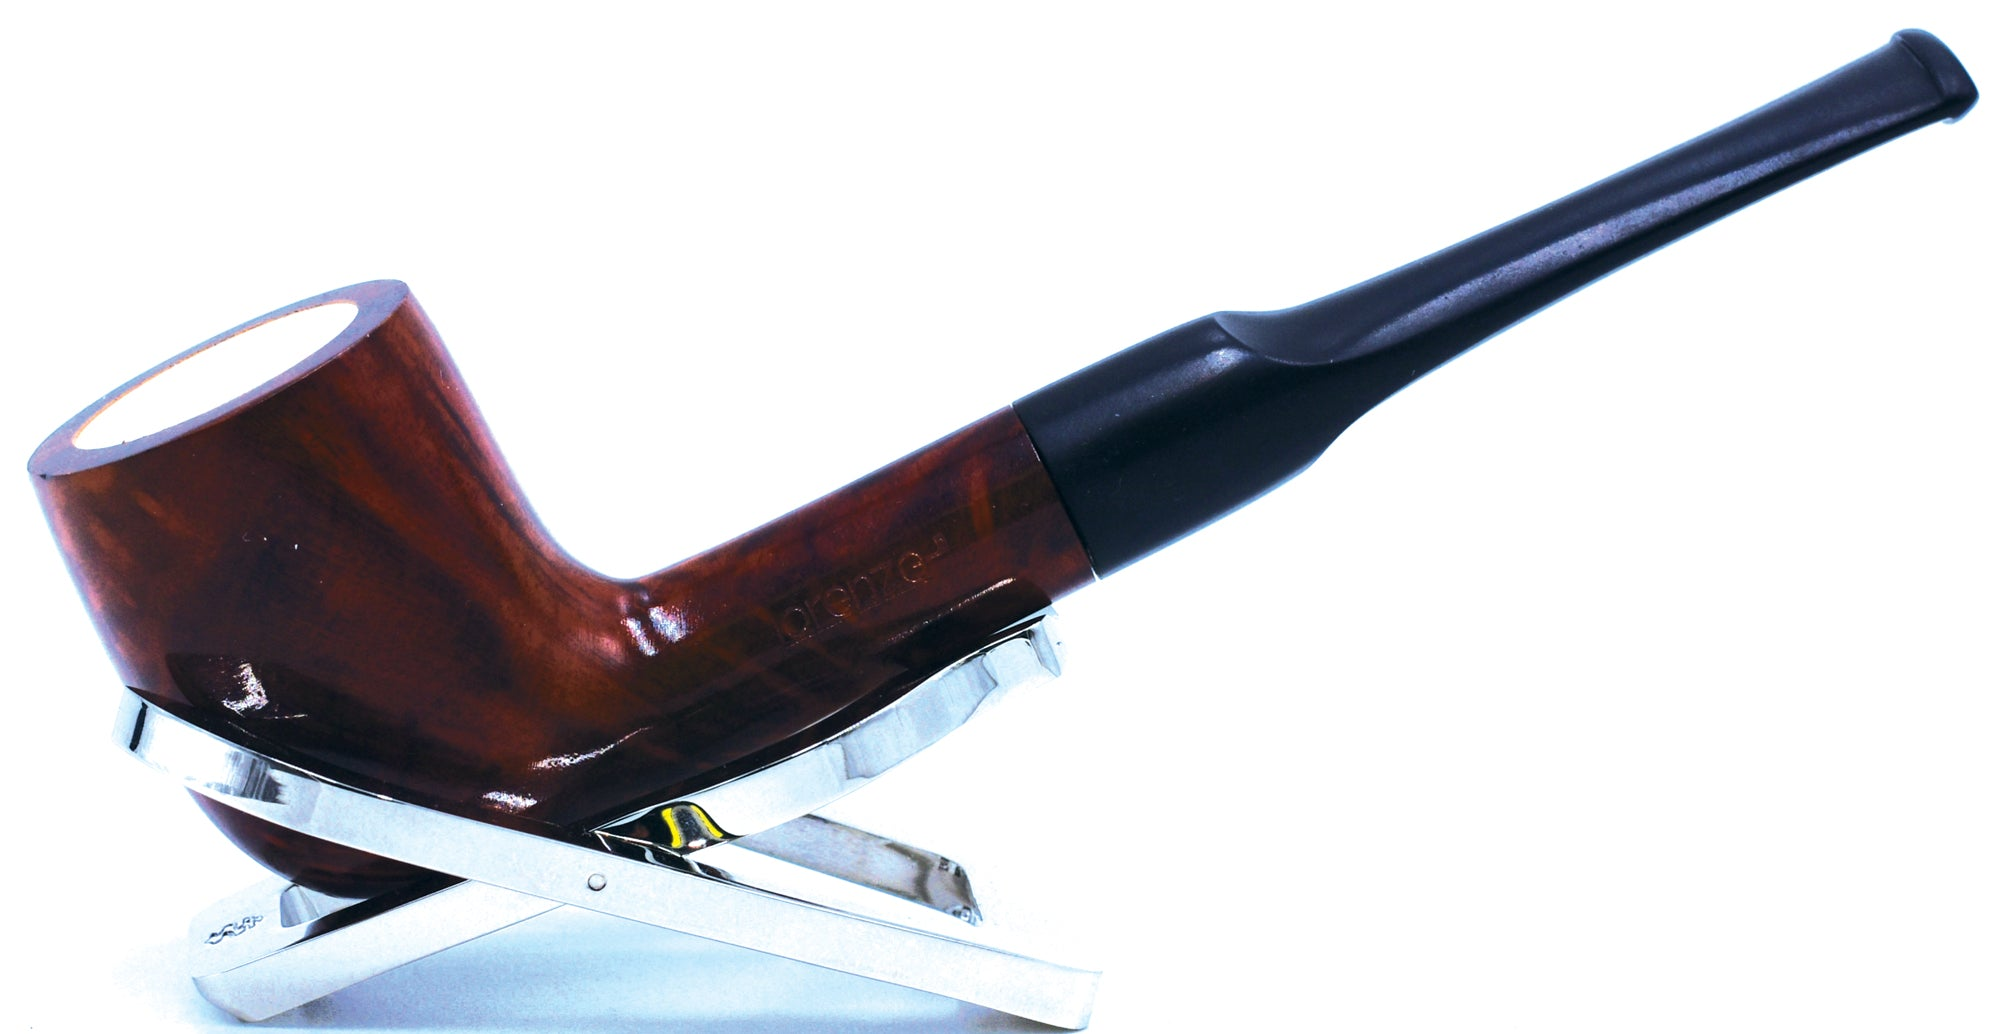 LORENZO® Meerschaum-lined Briar Smoking Pipe Made by Mediterranean Meerschaum and Briar In Italy 01-03-200